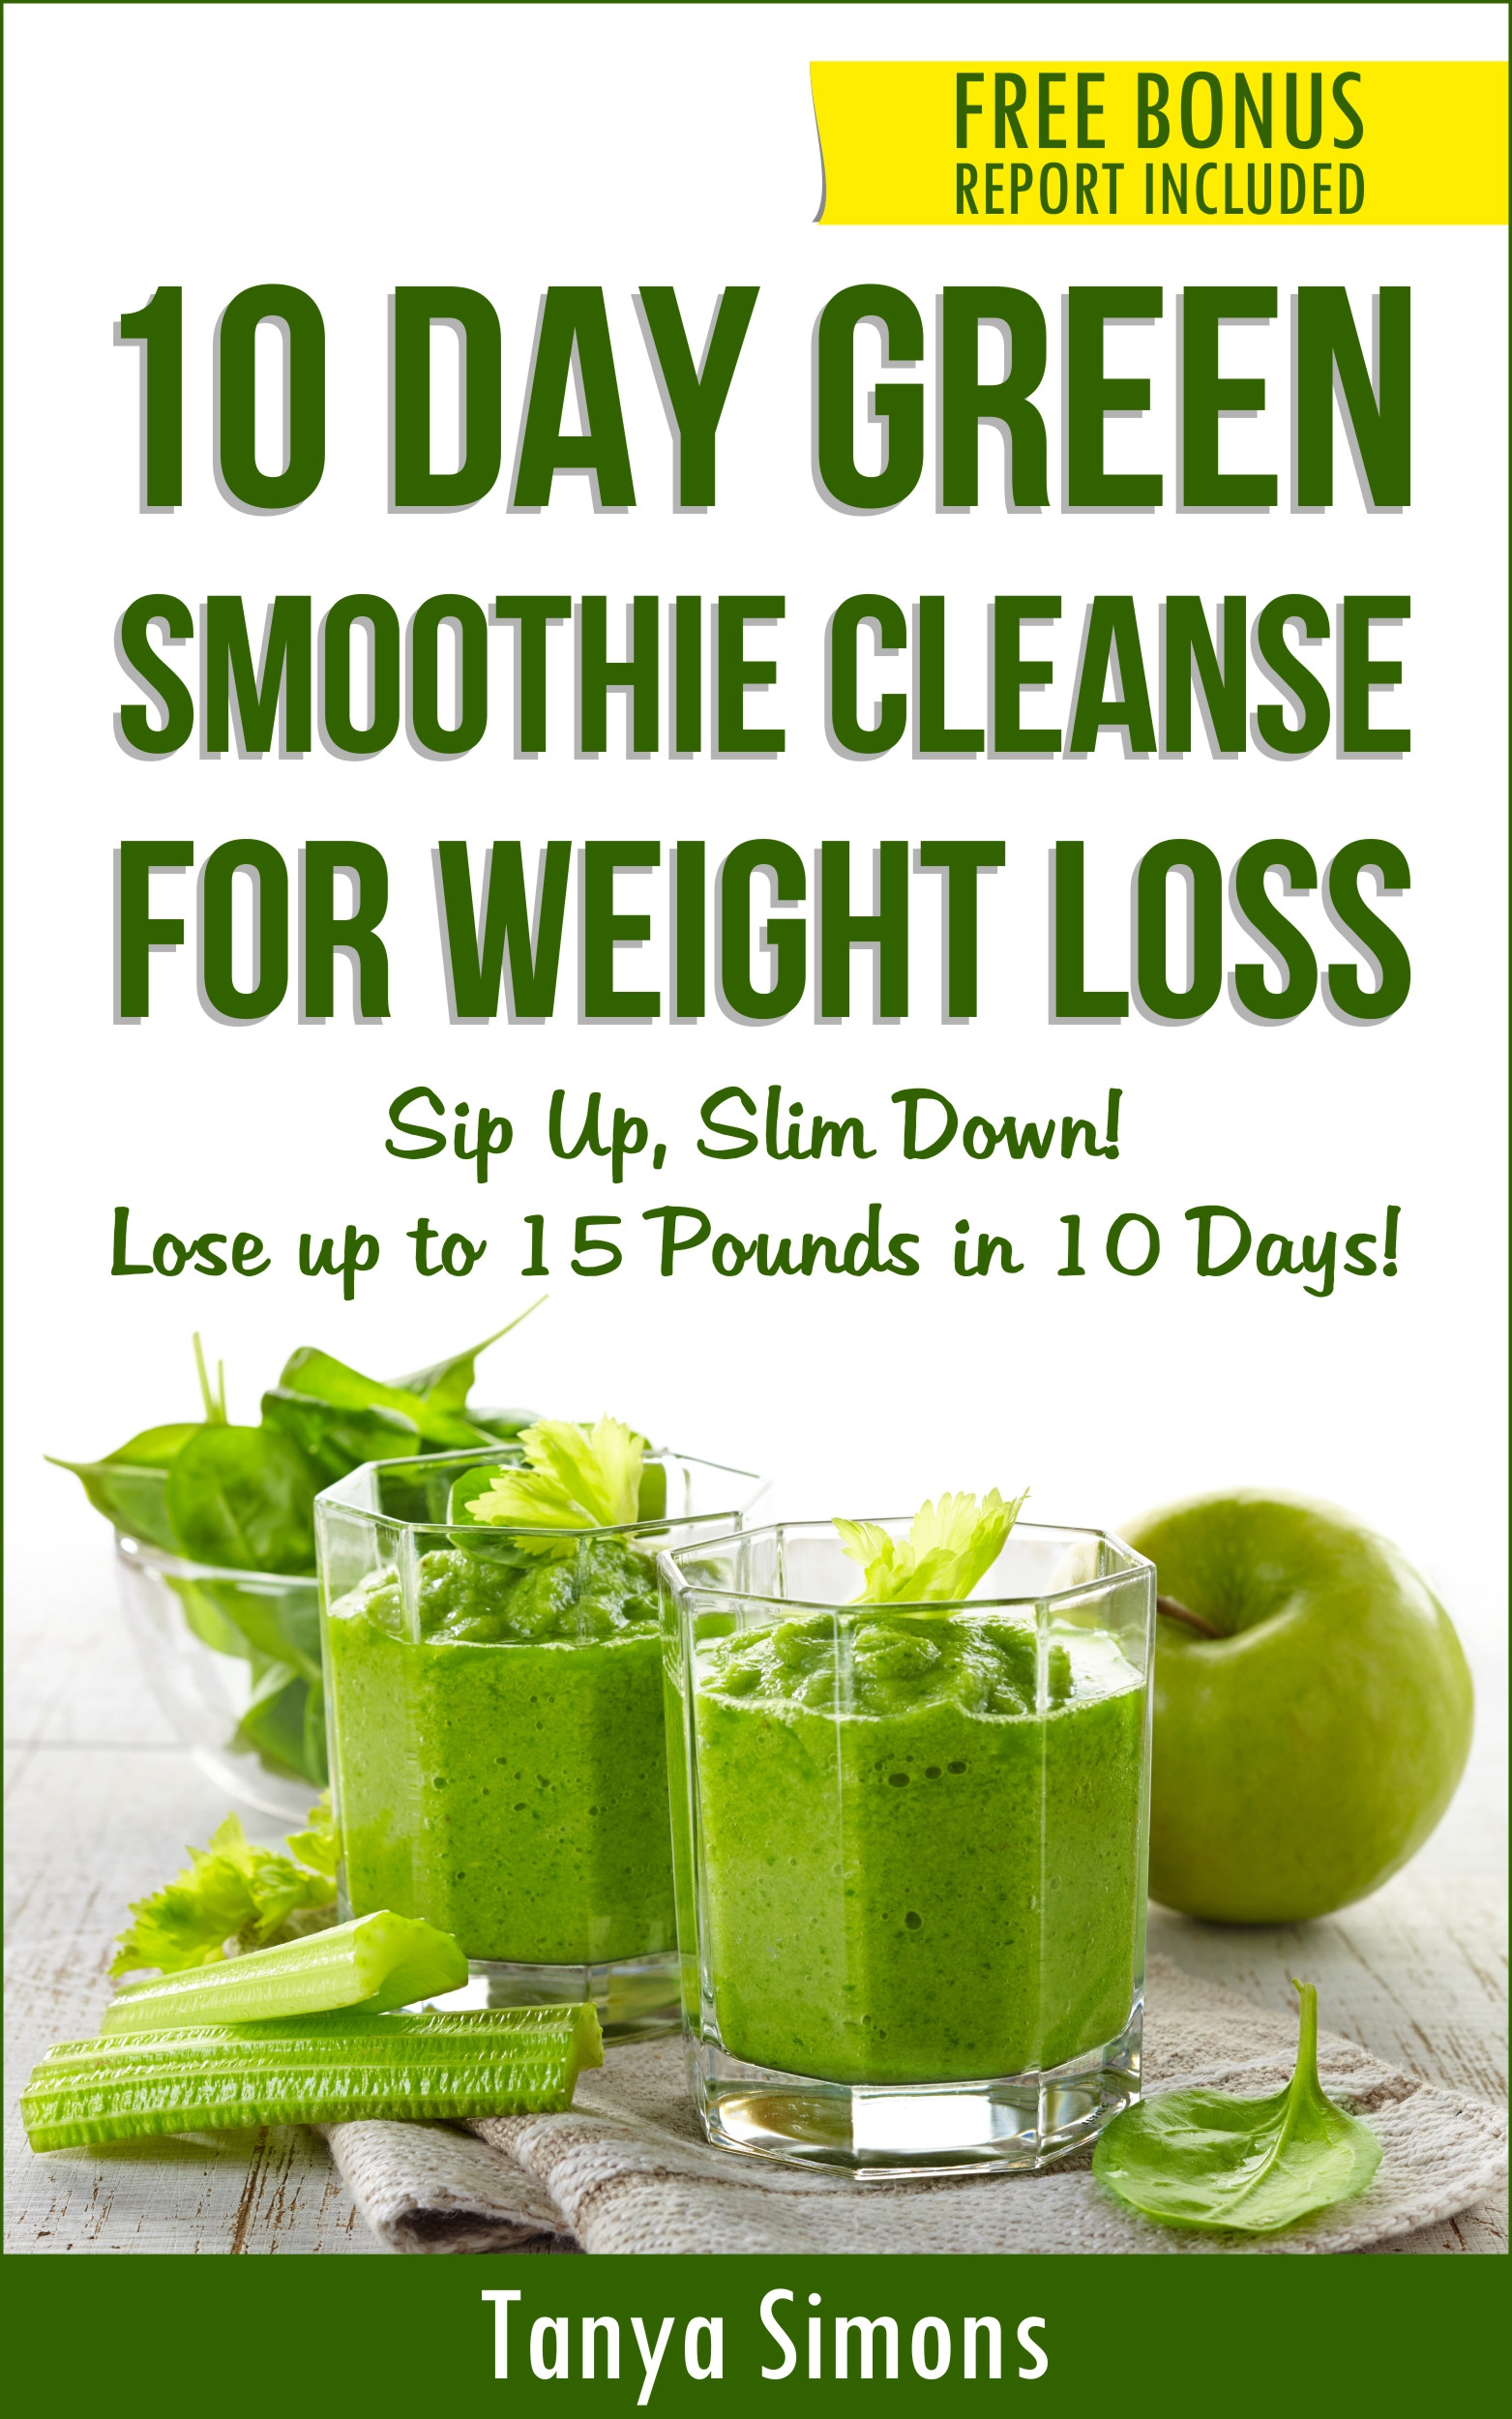 Green Smoothie Recipes For Weight Loss  10 Day Green Smoothie Cleanse Lose 15lbs with 10 Day